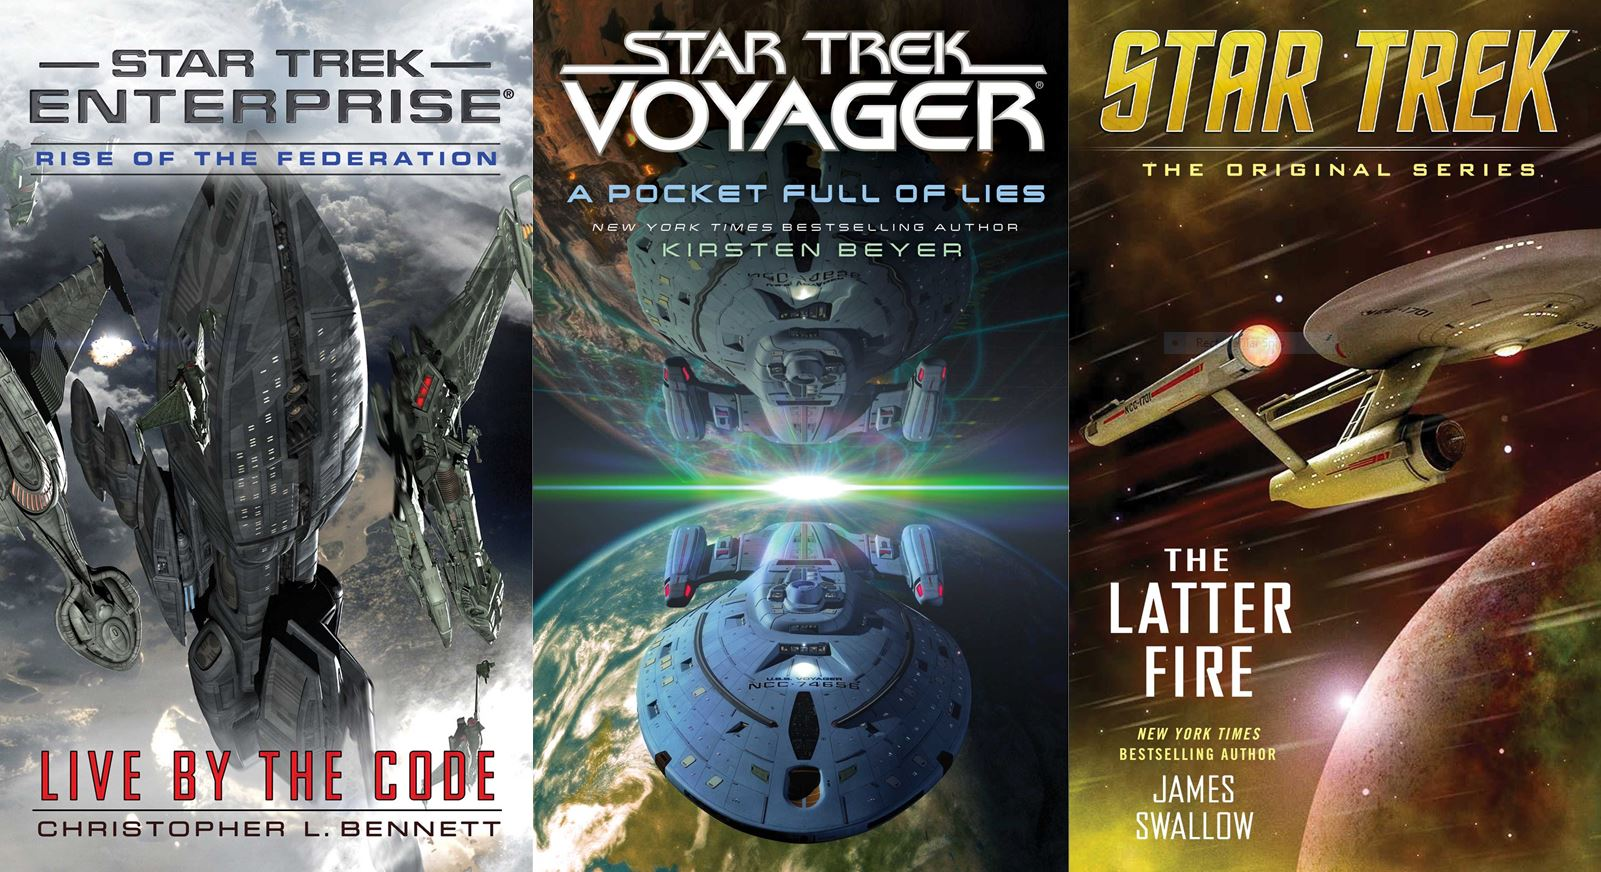 Star Trek Novels in 2016